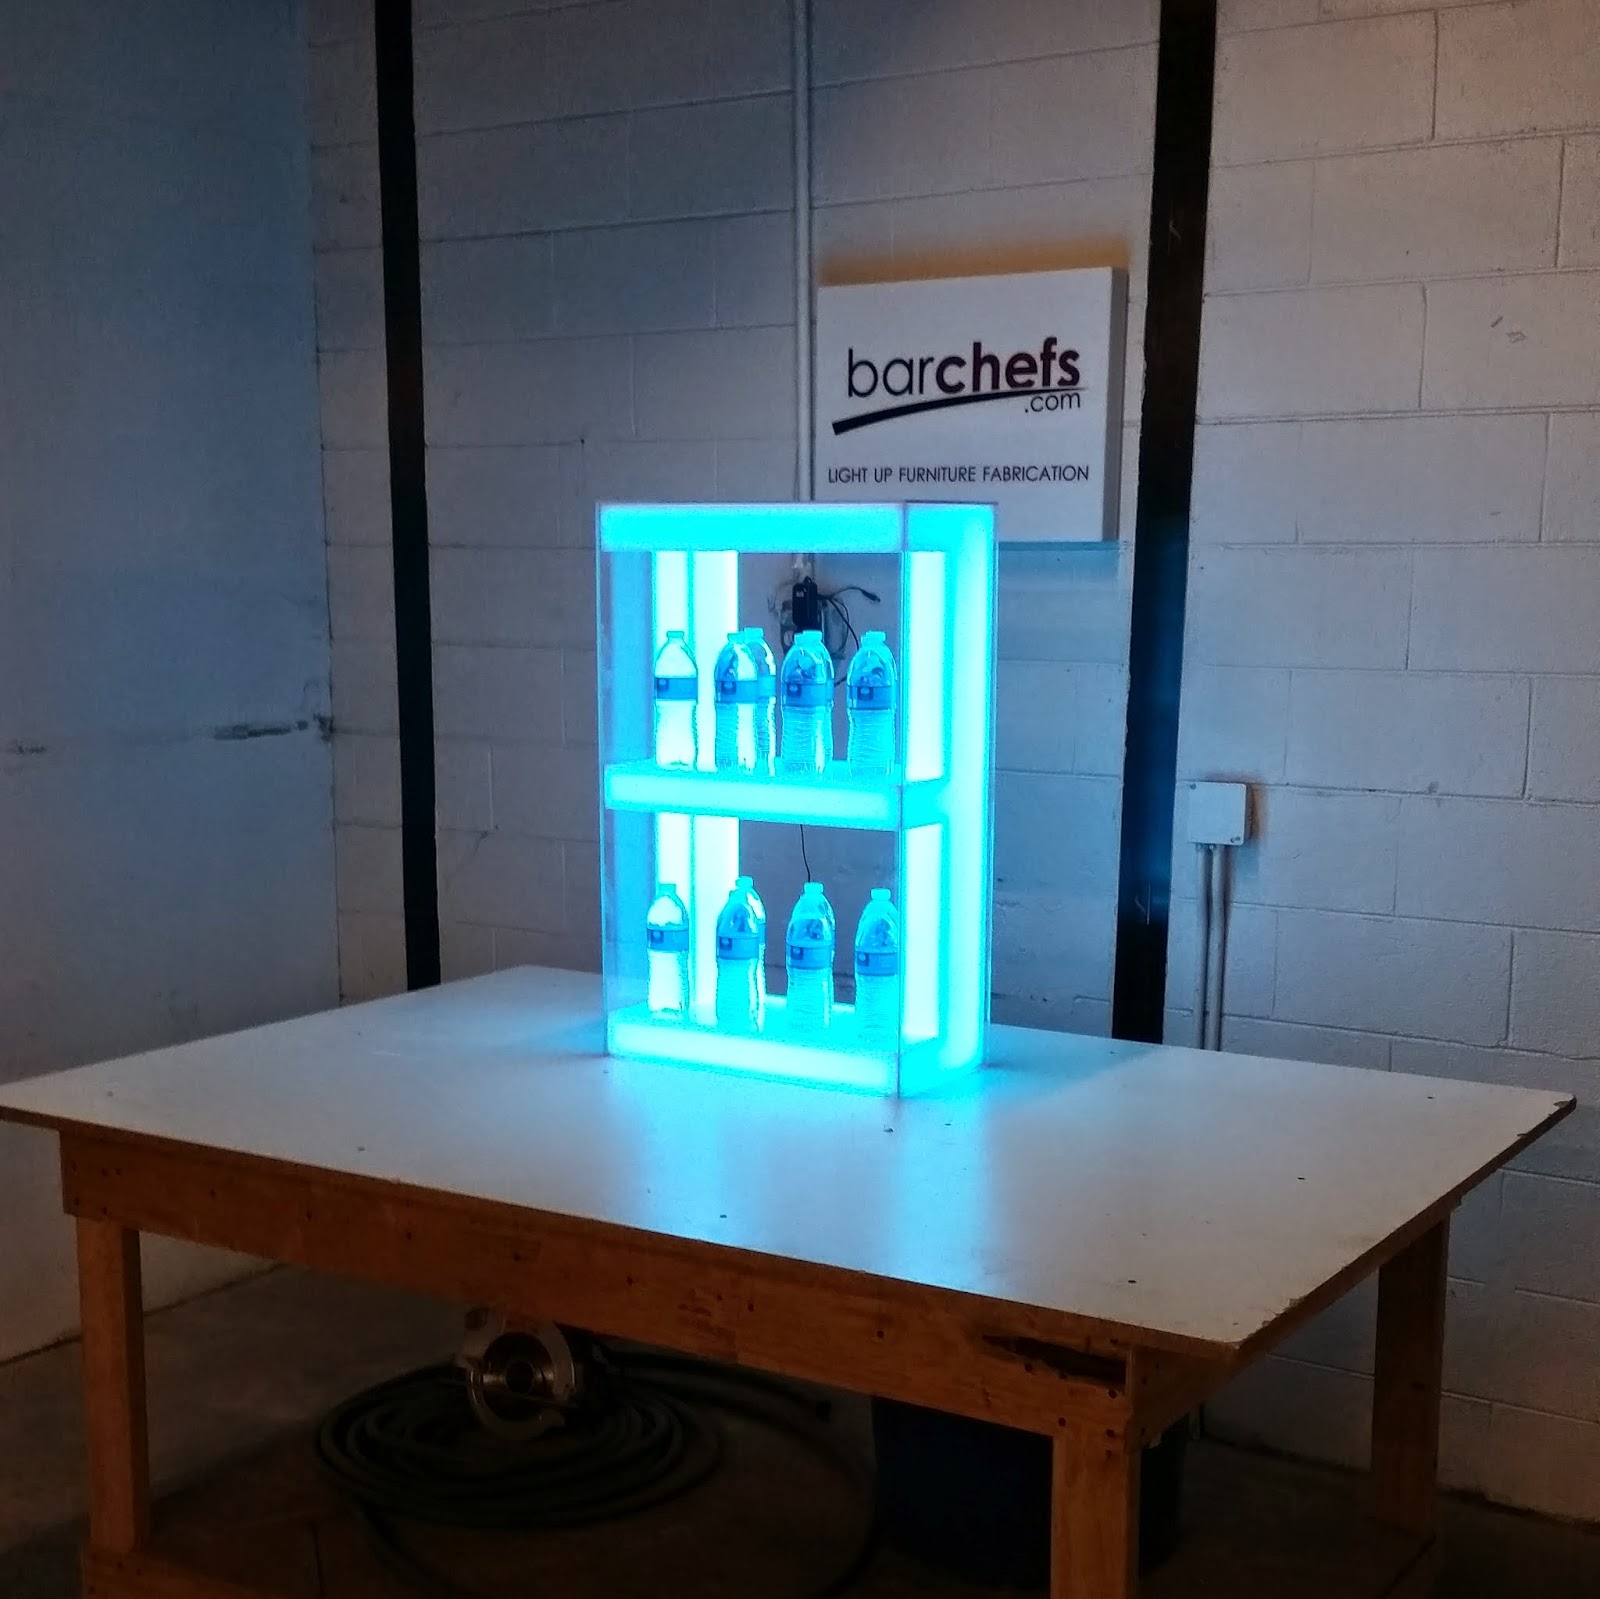 Barchefs Glowing Furniture And Event Equipment Blog